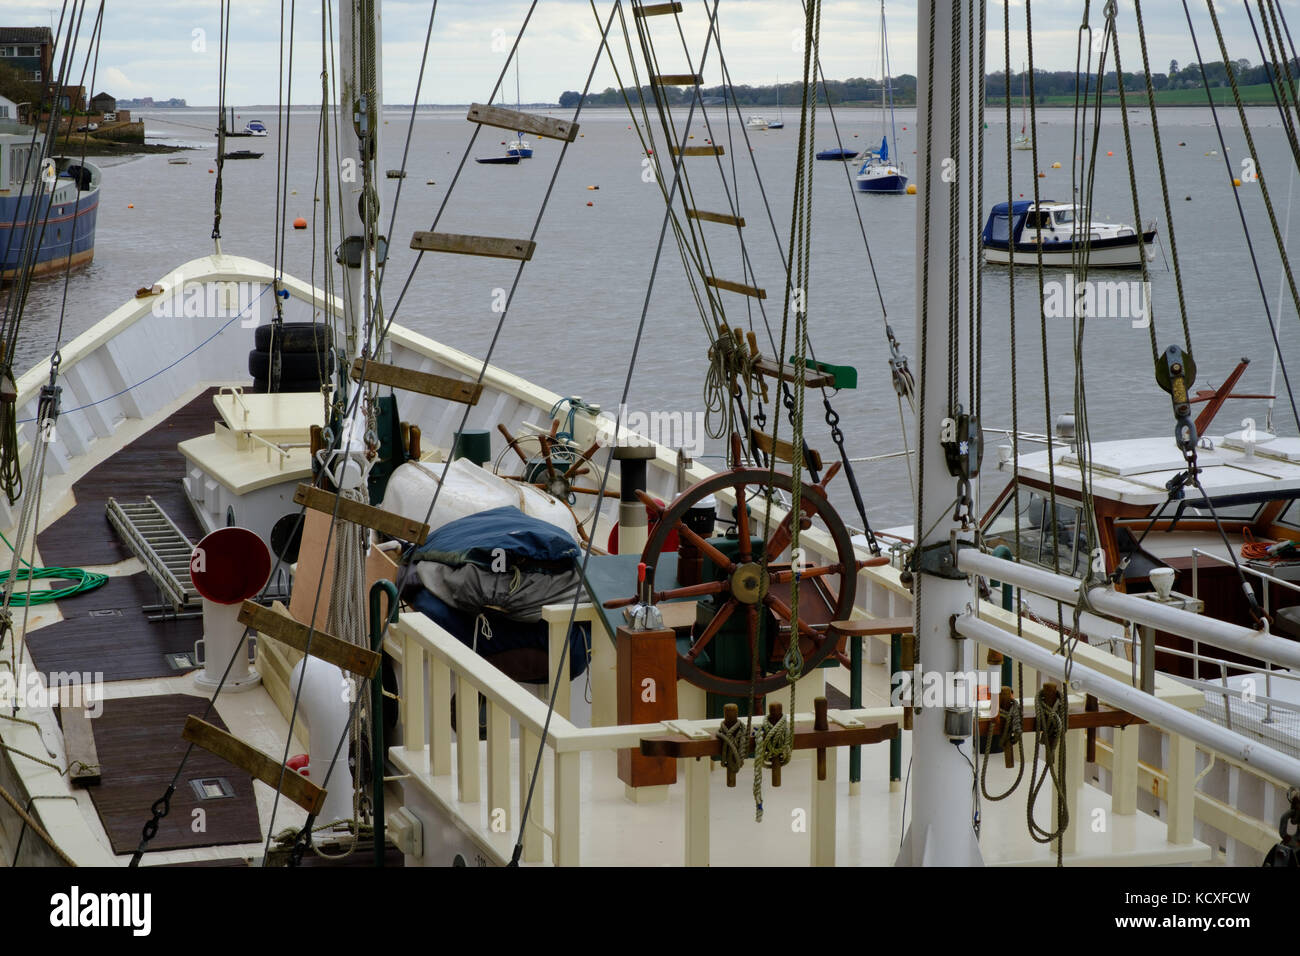 Traditional wooden boat moored at Topsham on River Exe, UK - Stock Image